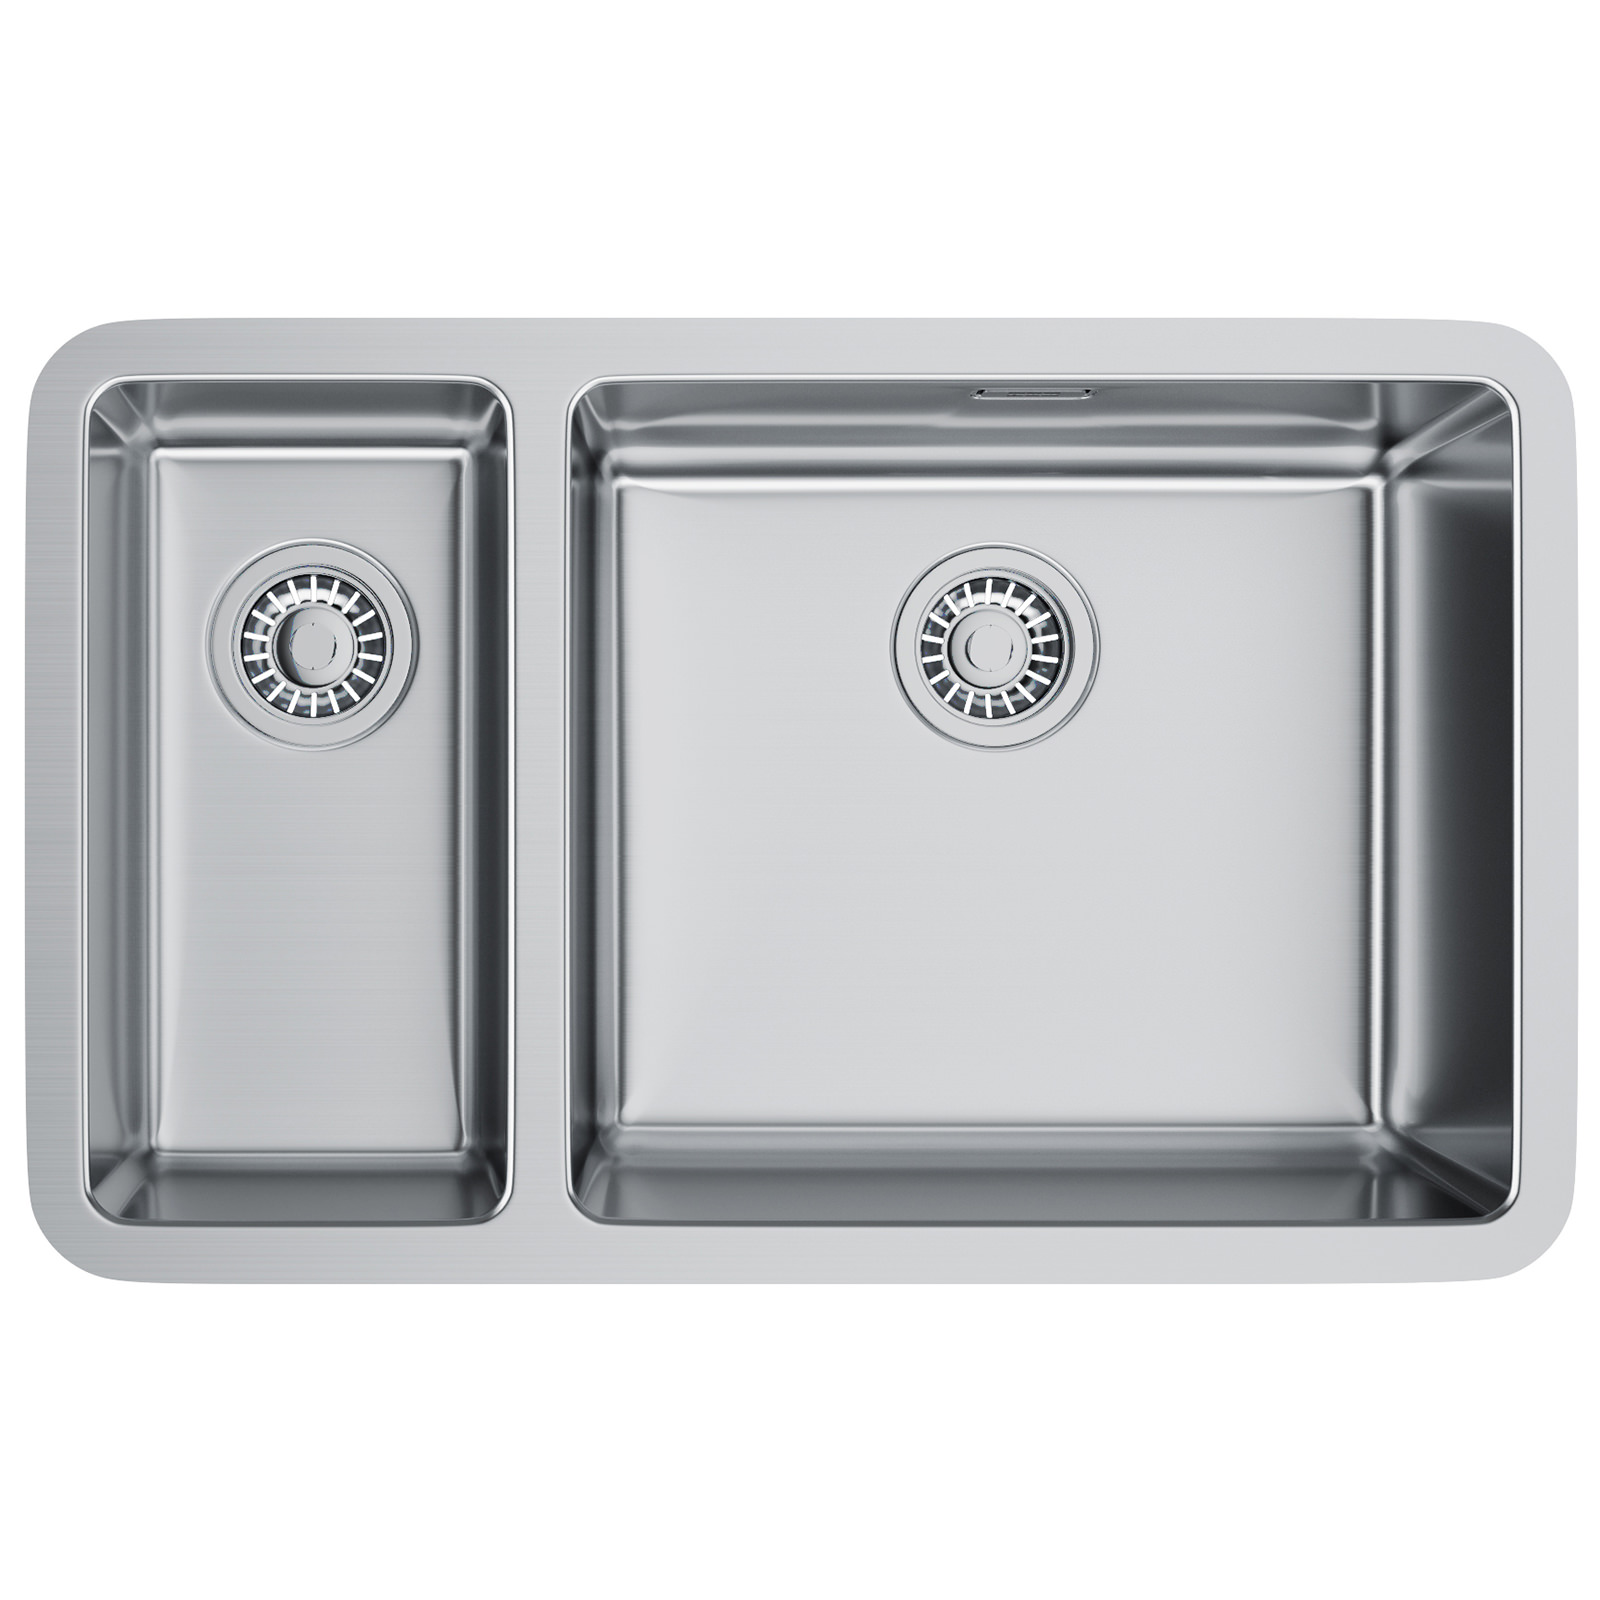 Franke Sink Kubus : Franke Kubus KBX 160 45-20 Stainless Steel Undermount Kitchen Sink ...